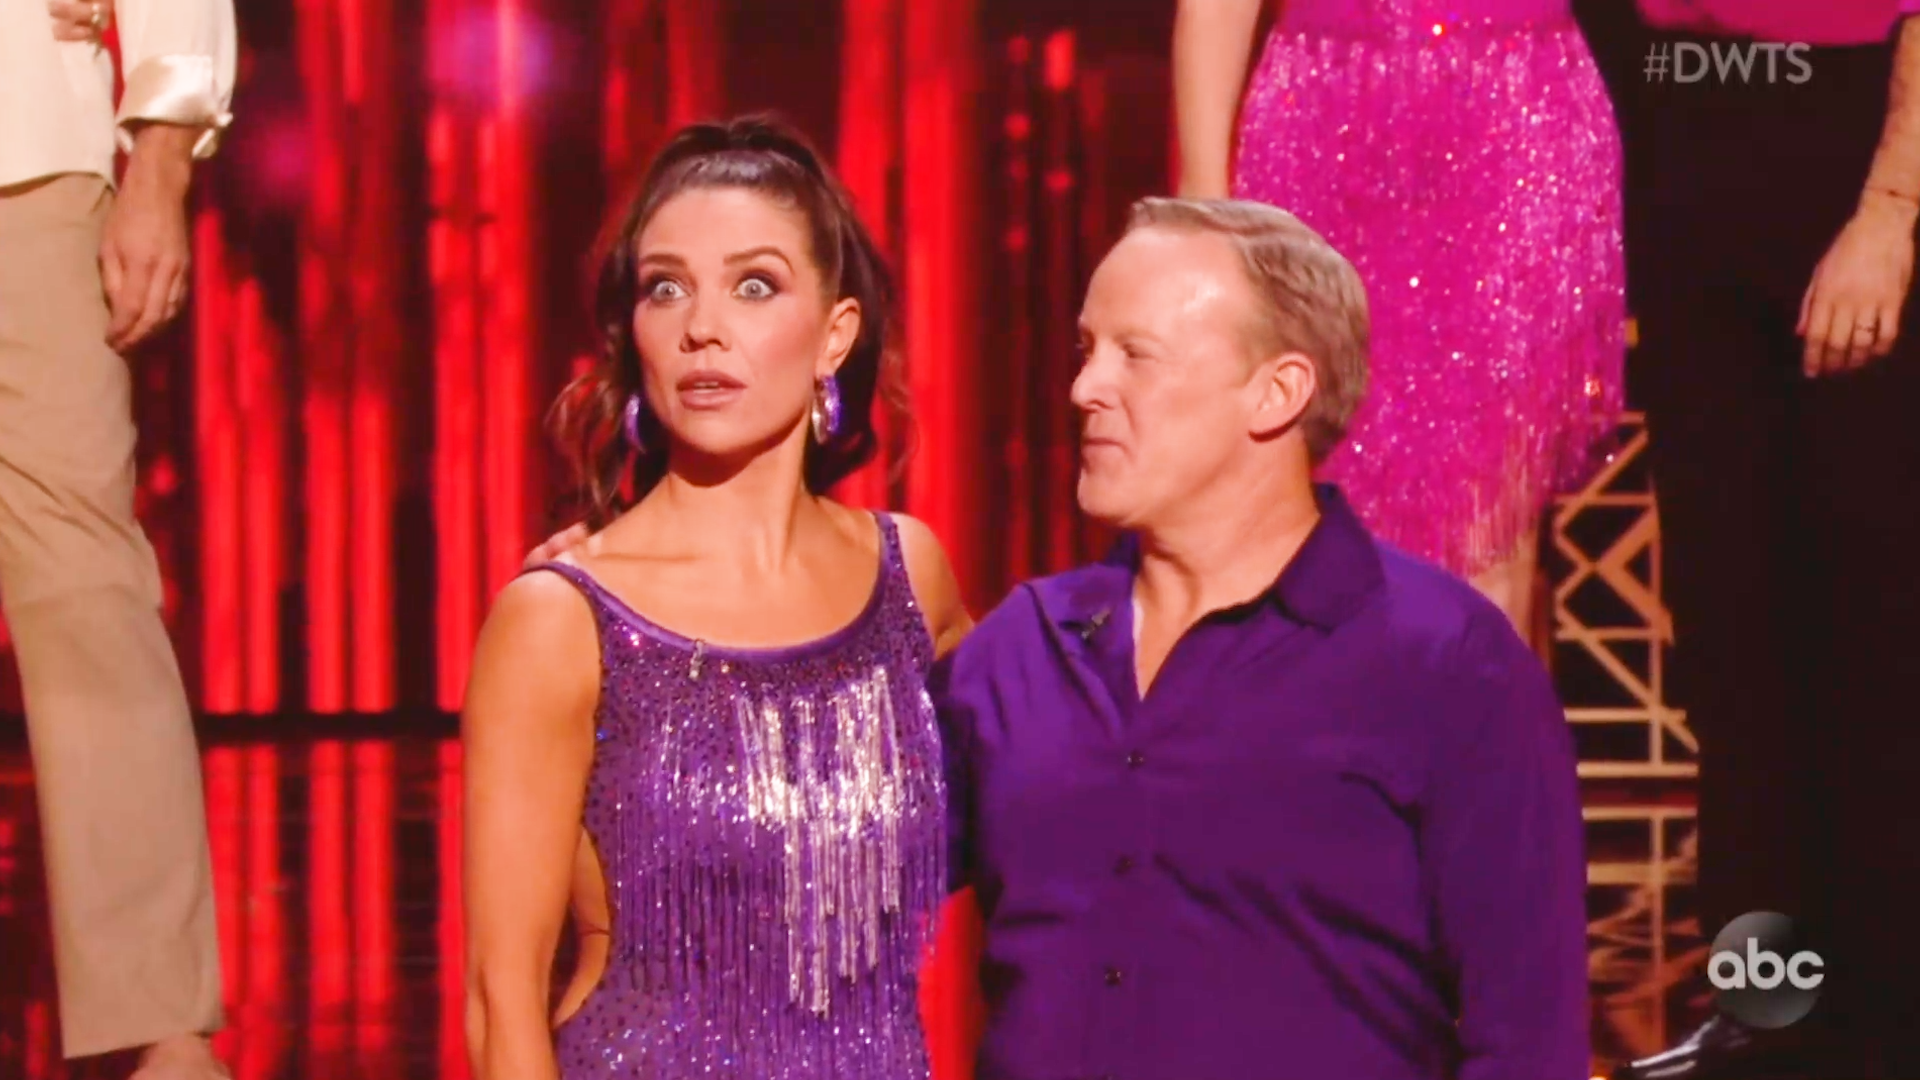 Sean Spicer's success on 'DWTS' is frustrating judges and viewers - Yahoo Entertainment